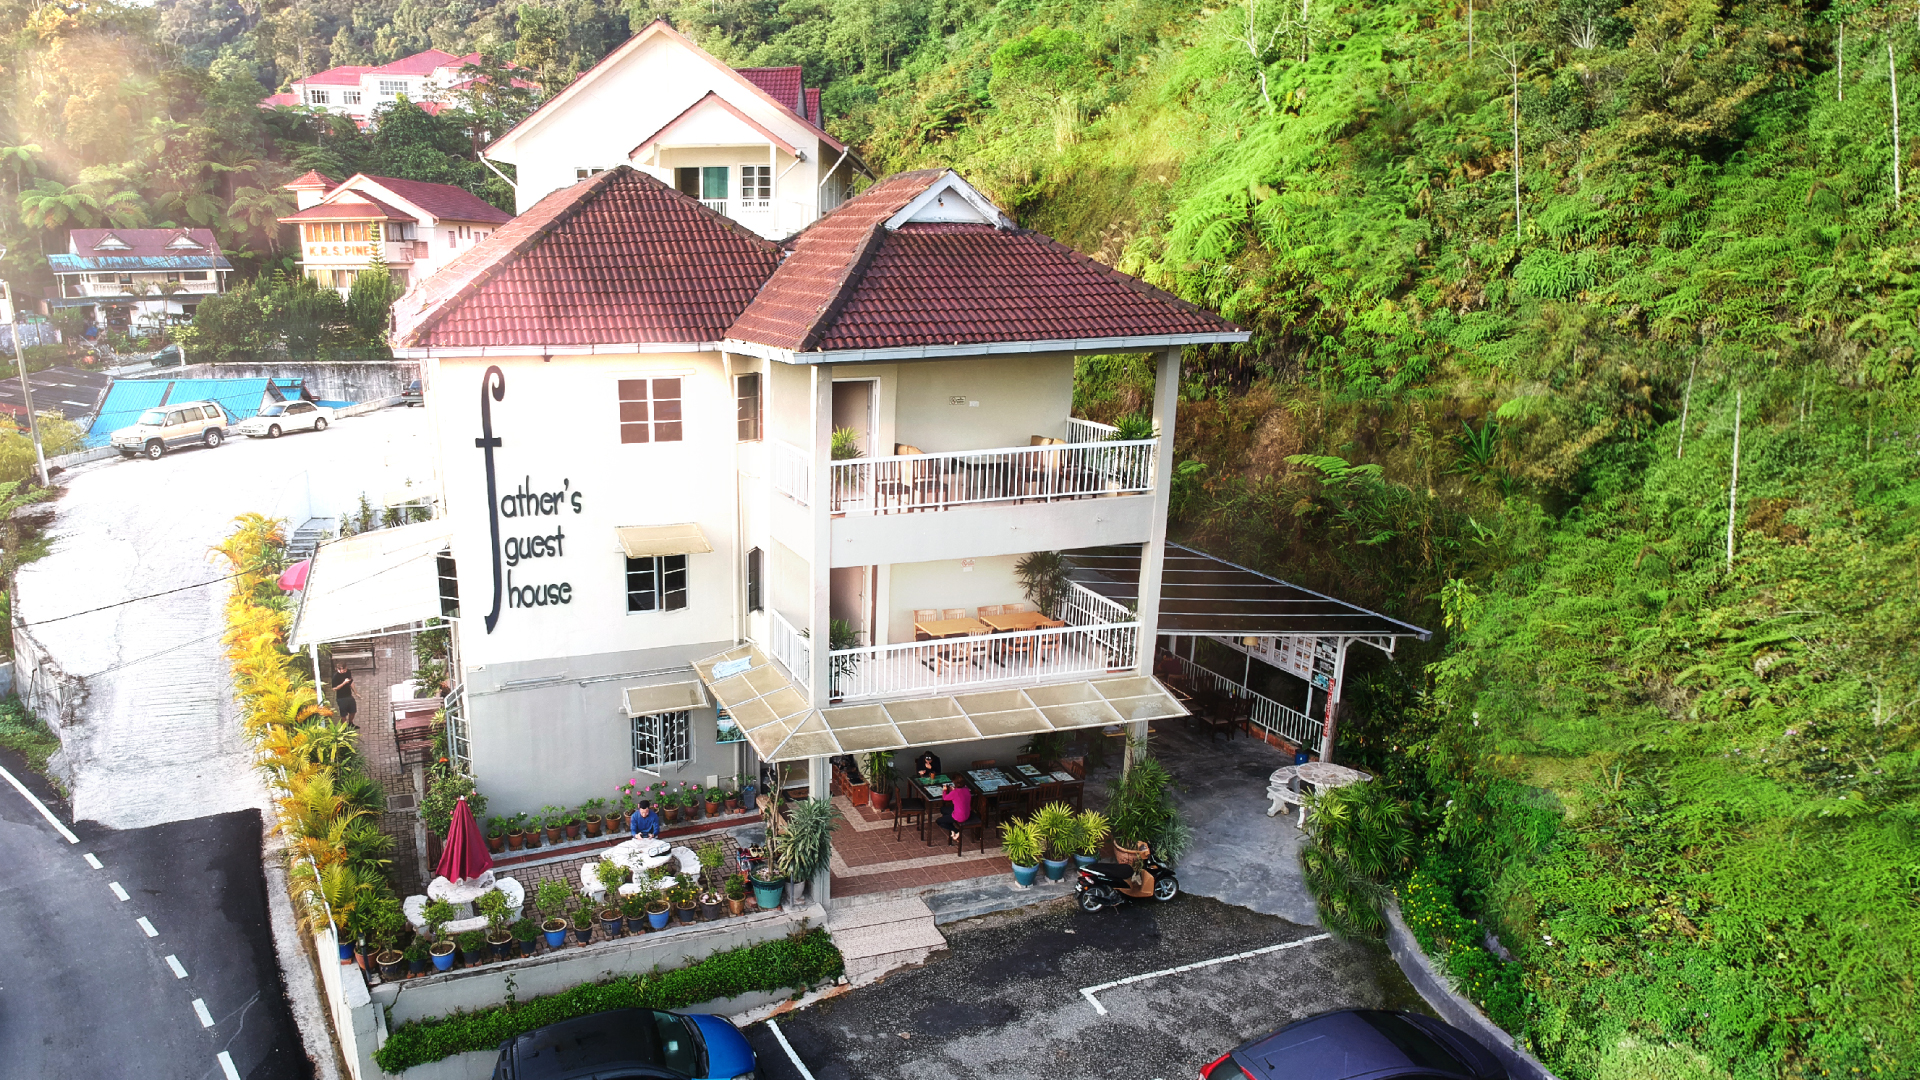 WELCOME TO  FATHER'S GUEST HOUSE: WHERE ADVENTURE  MEETS COMFORT